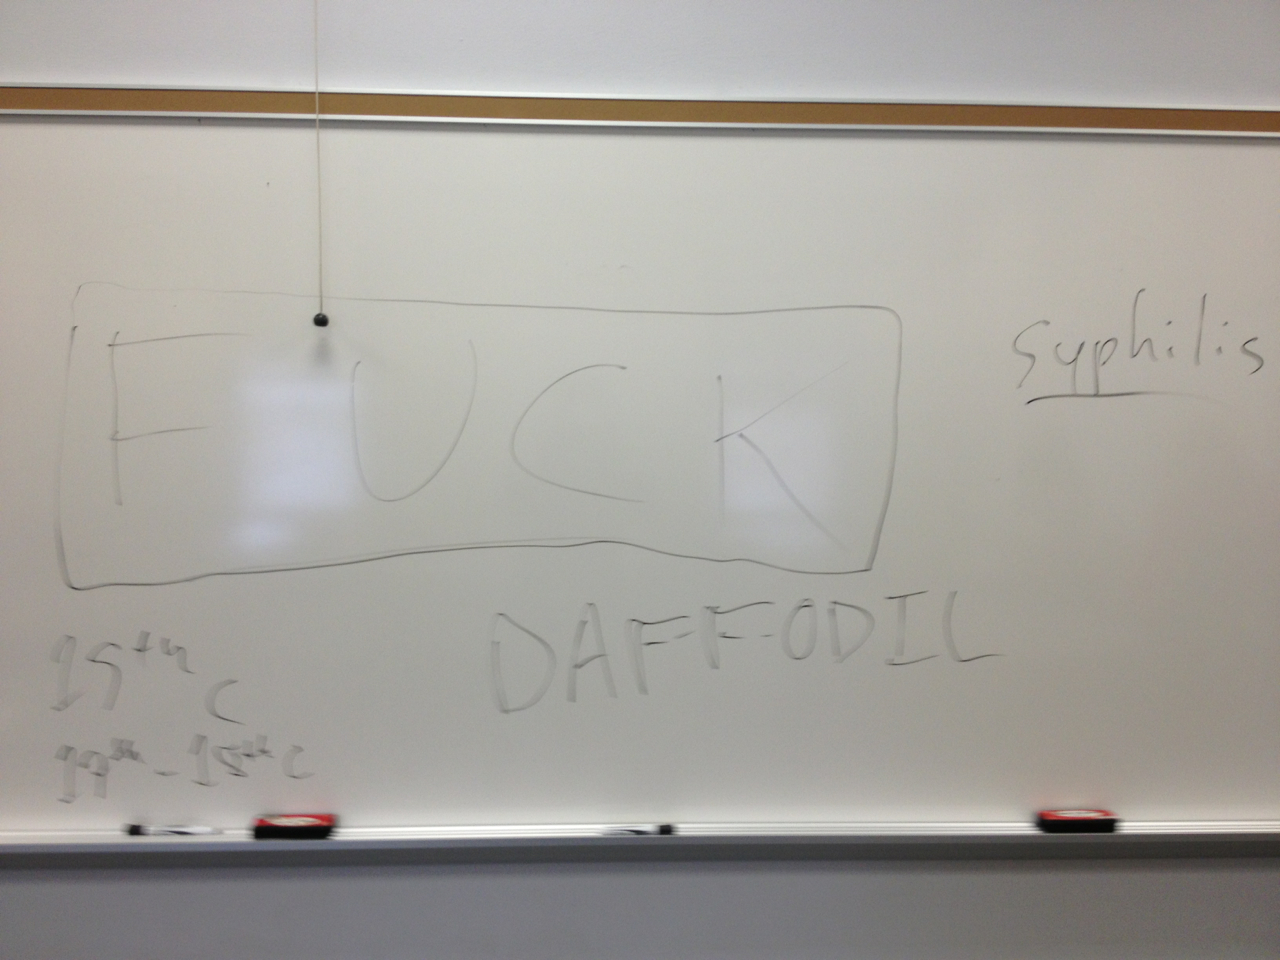 This is what the whiteboard in my classroom looked like at the end of class this morning.